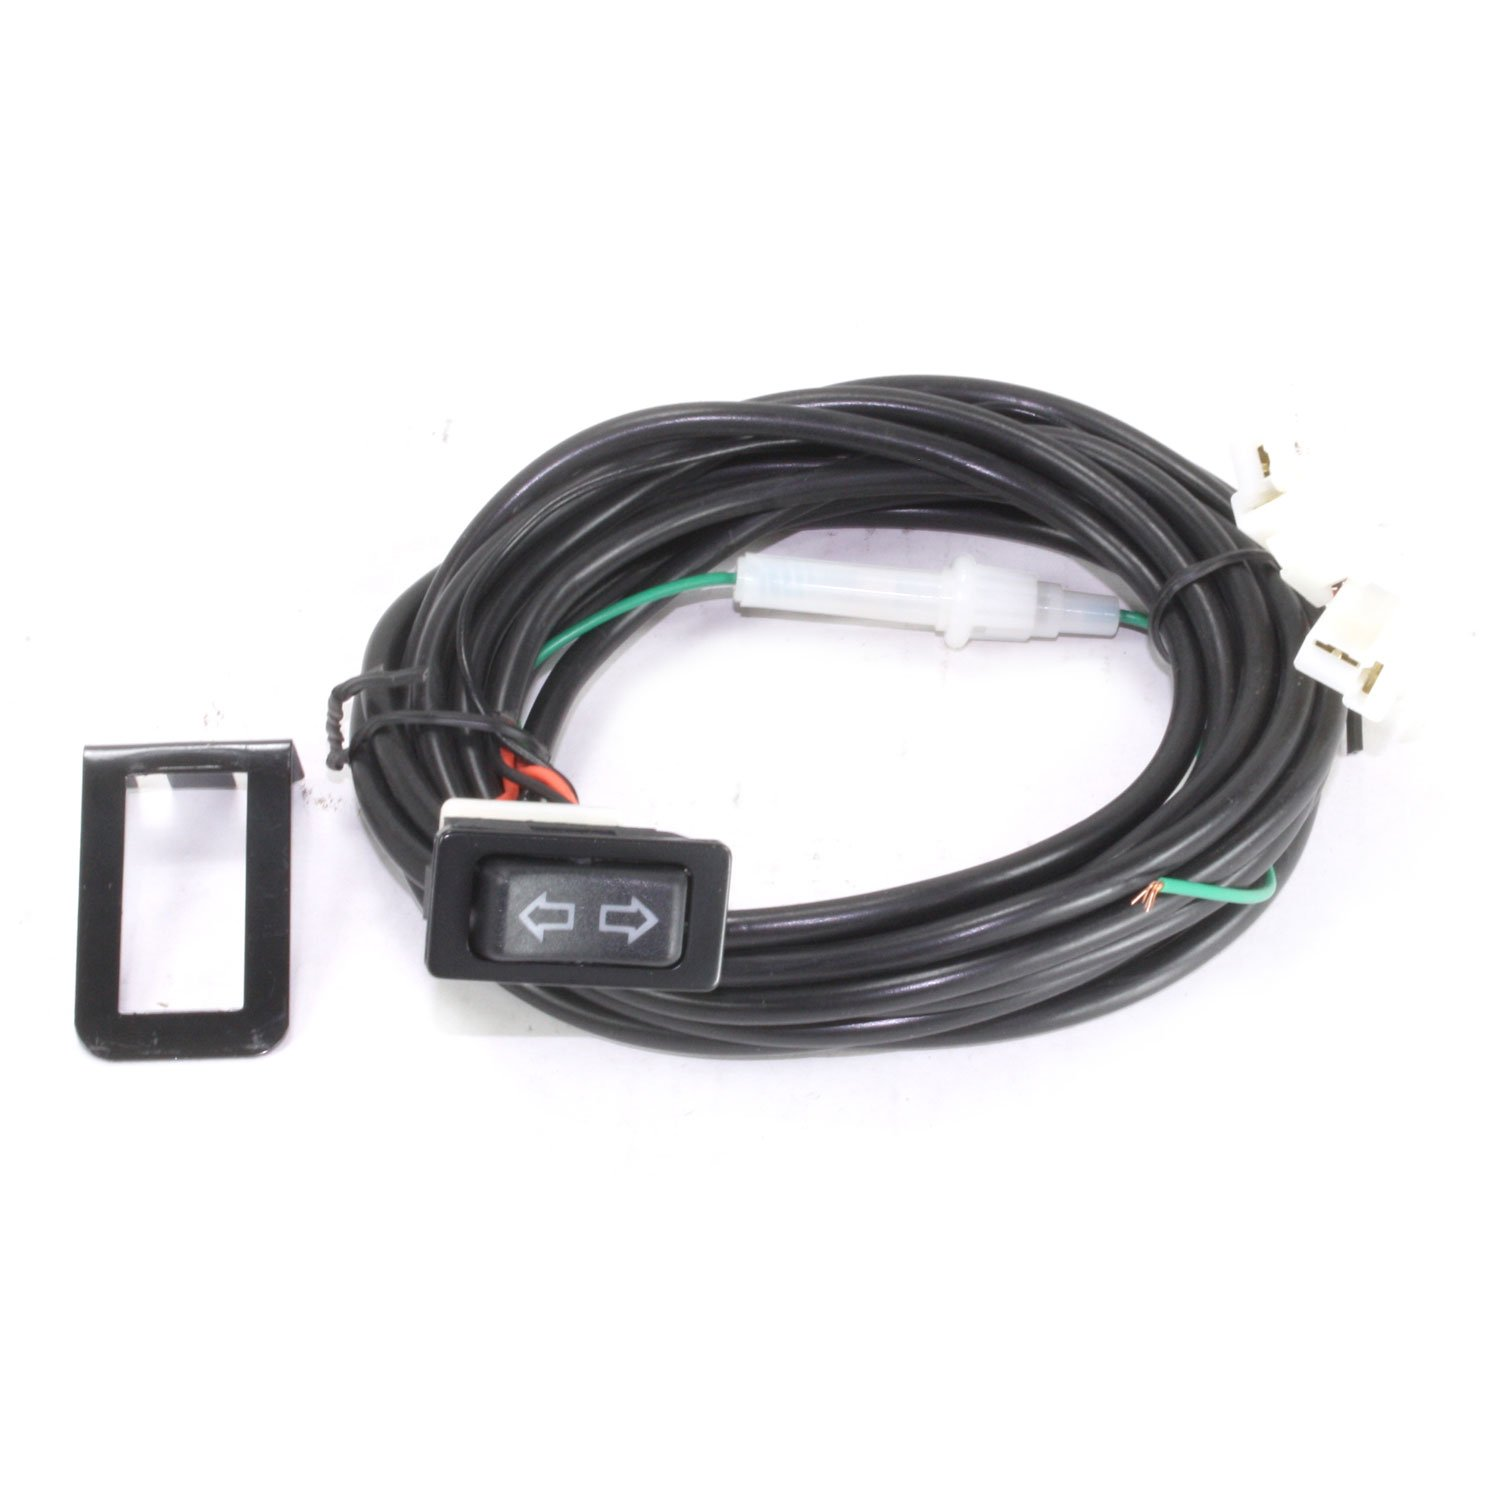 Doug's Headers DEC6230 Dual Wiring Harness (Electric Cut-Out Replacement), 1 Pack